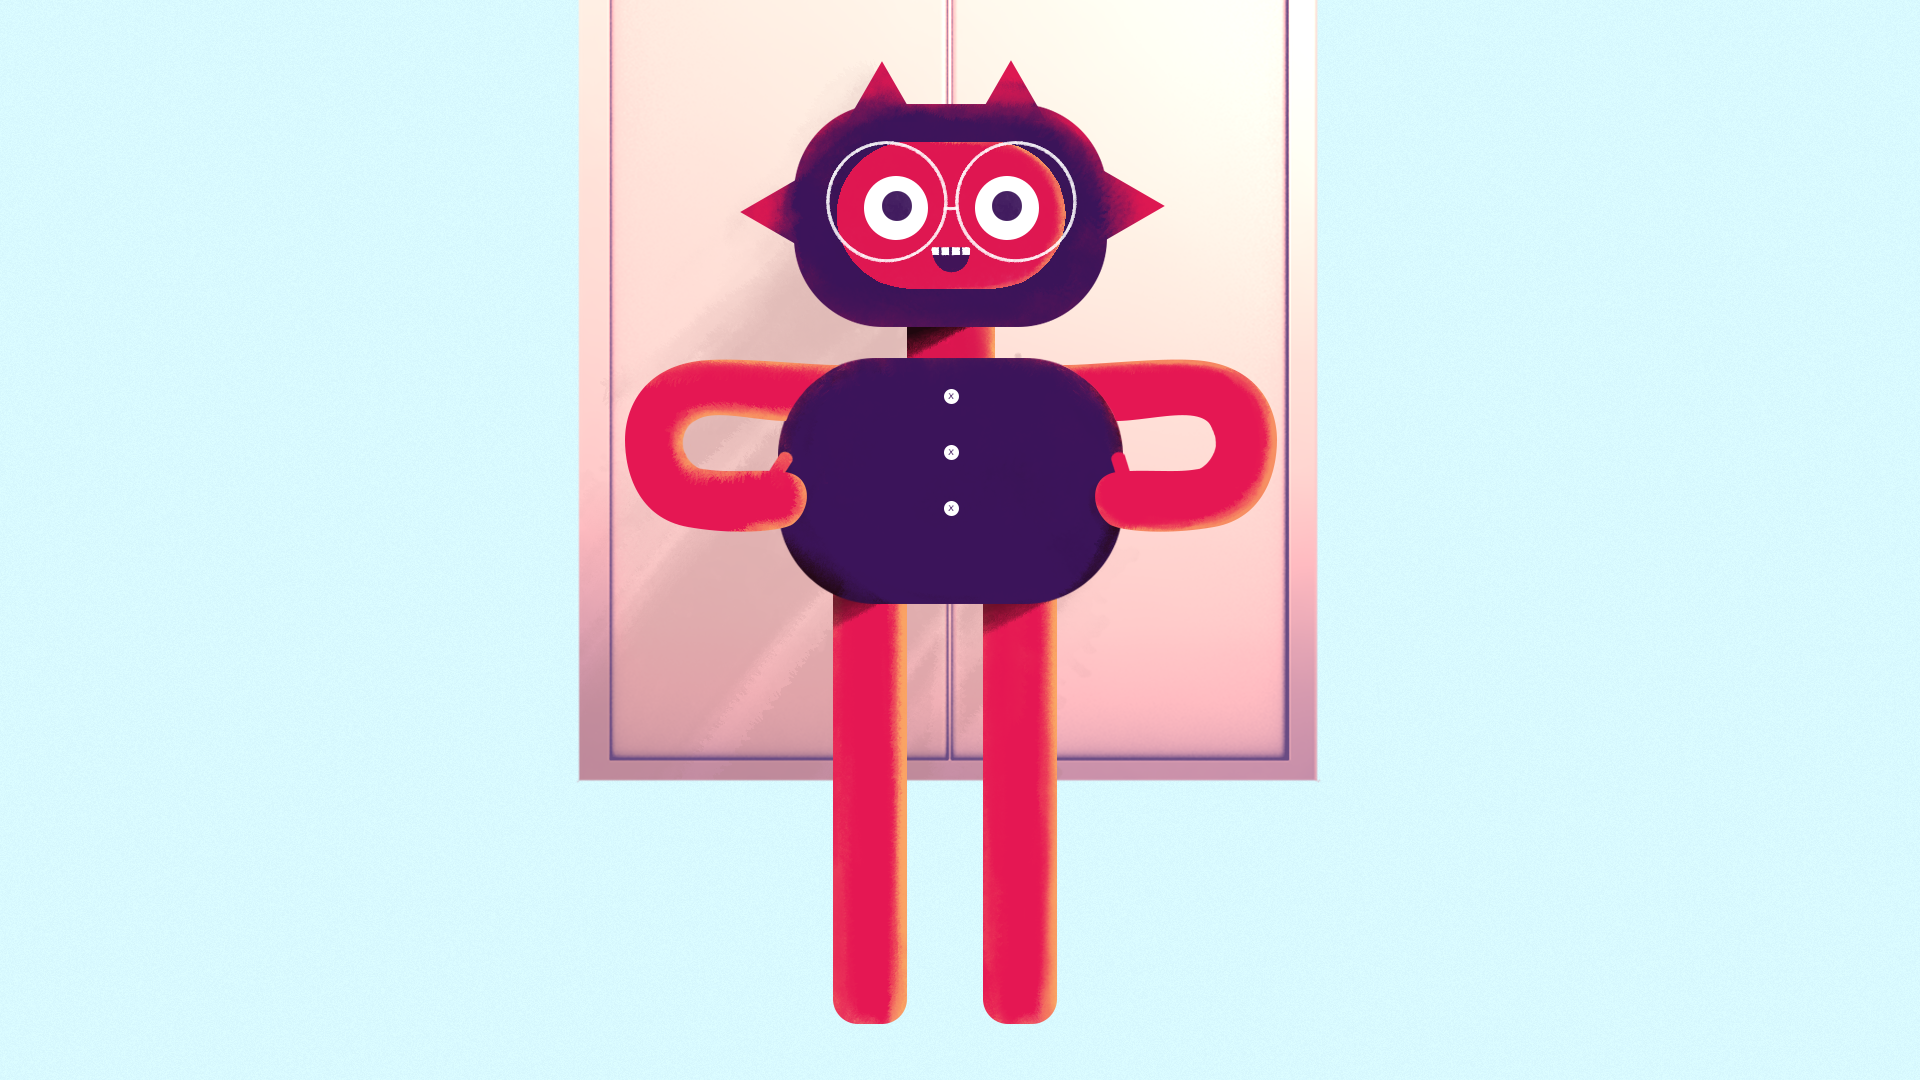 character_frame1.png